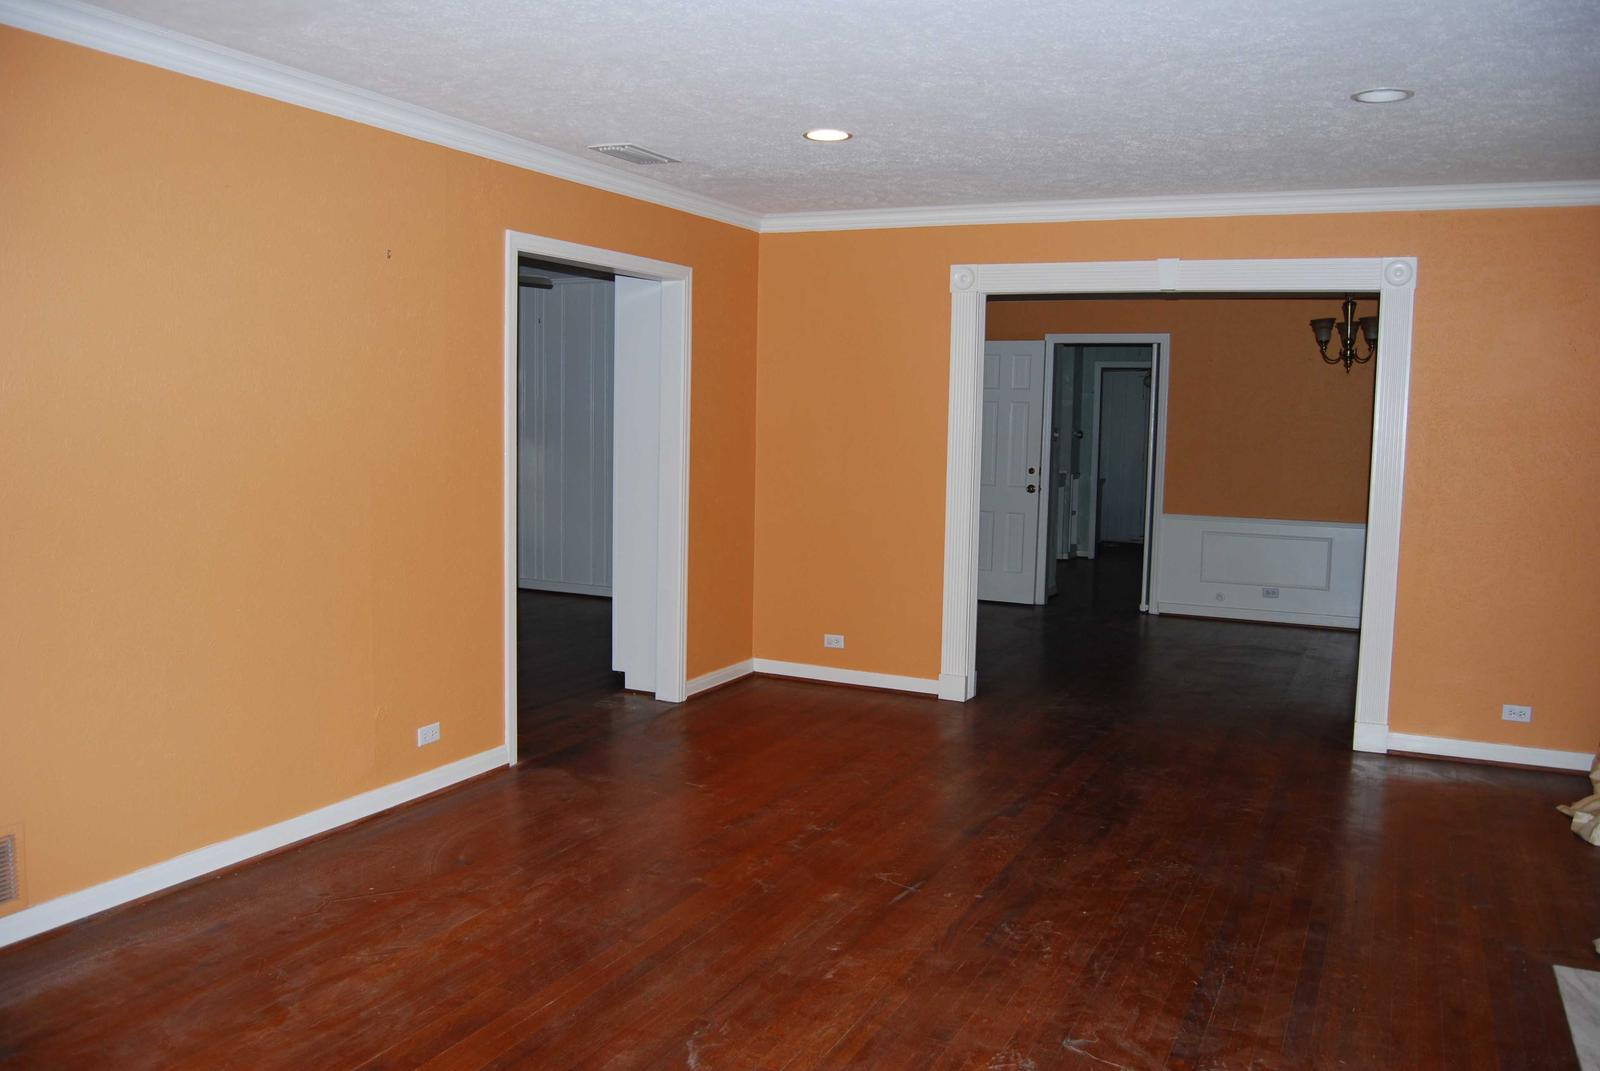 Look at pics and help suggest wall color hardwood floors paint ceiling home interior - Ideas on home interior paint ...